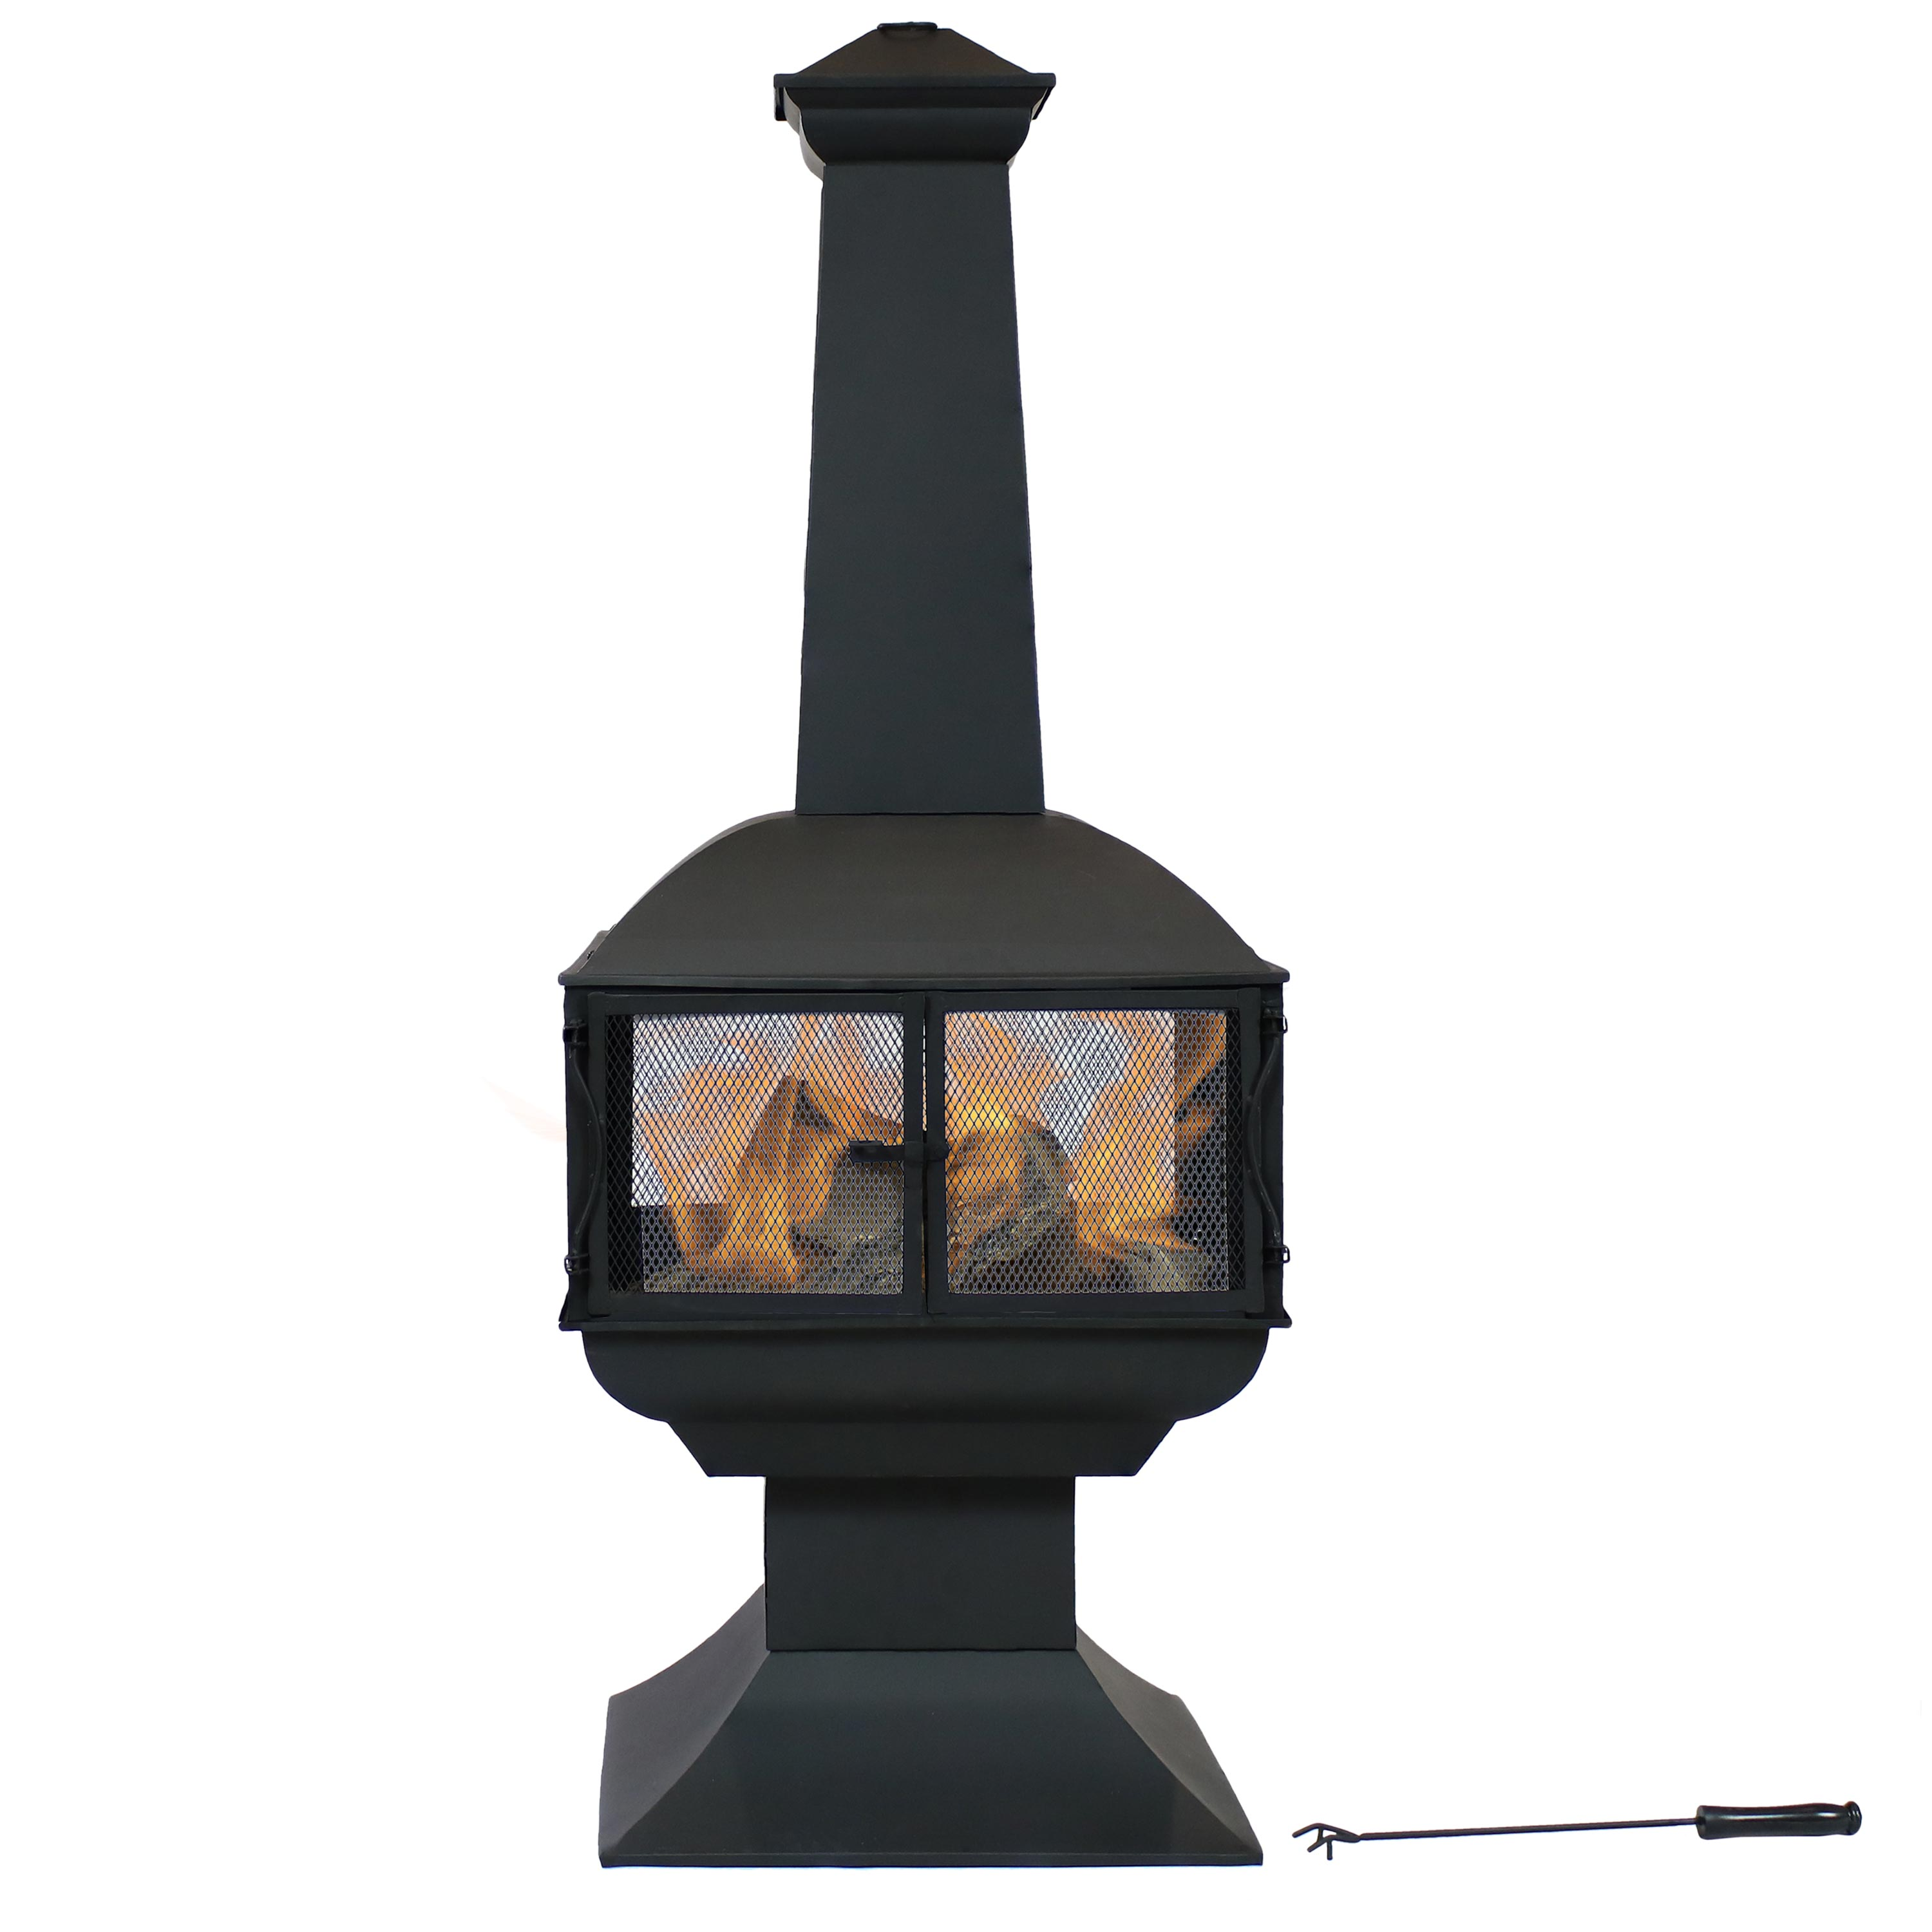 Sunnydaze Outdoor Wood Burning Fire Pit Chiminea - Black Steel Firepit with Log Grate and Poker - Metal Patio Fireplace with 360-Degree View - 57 Inch